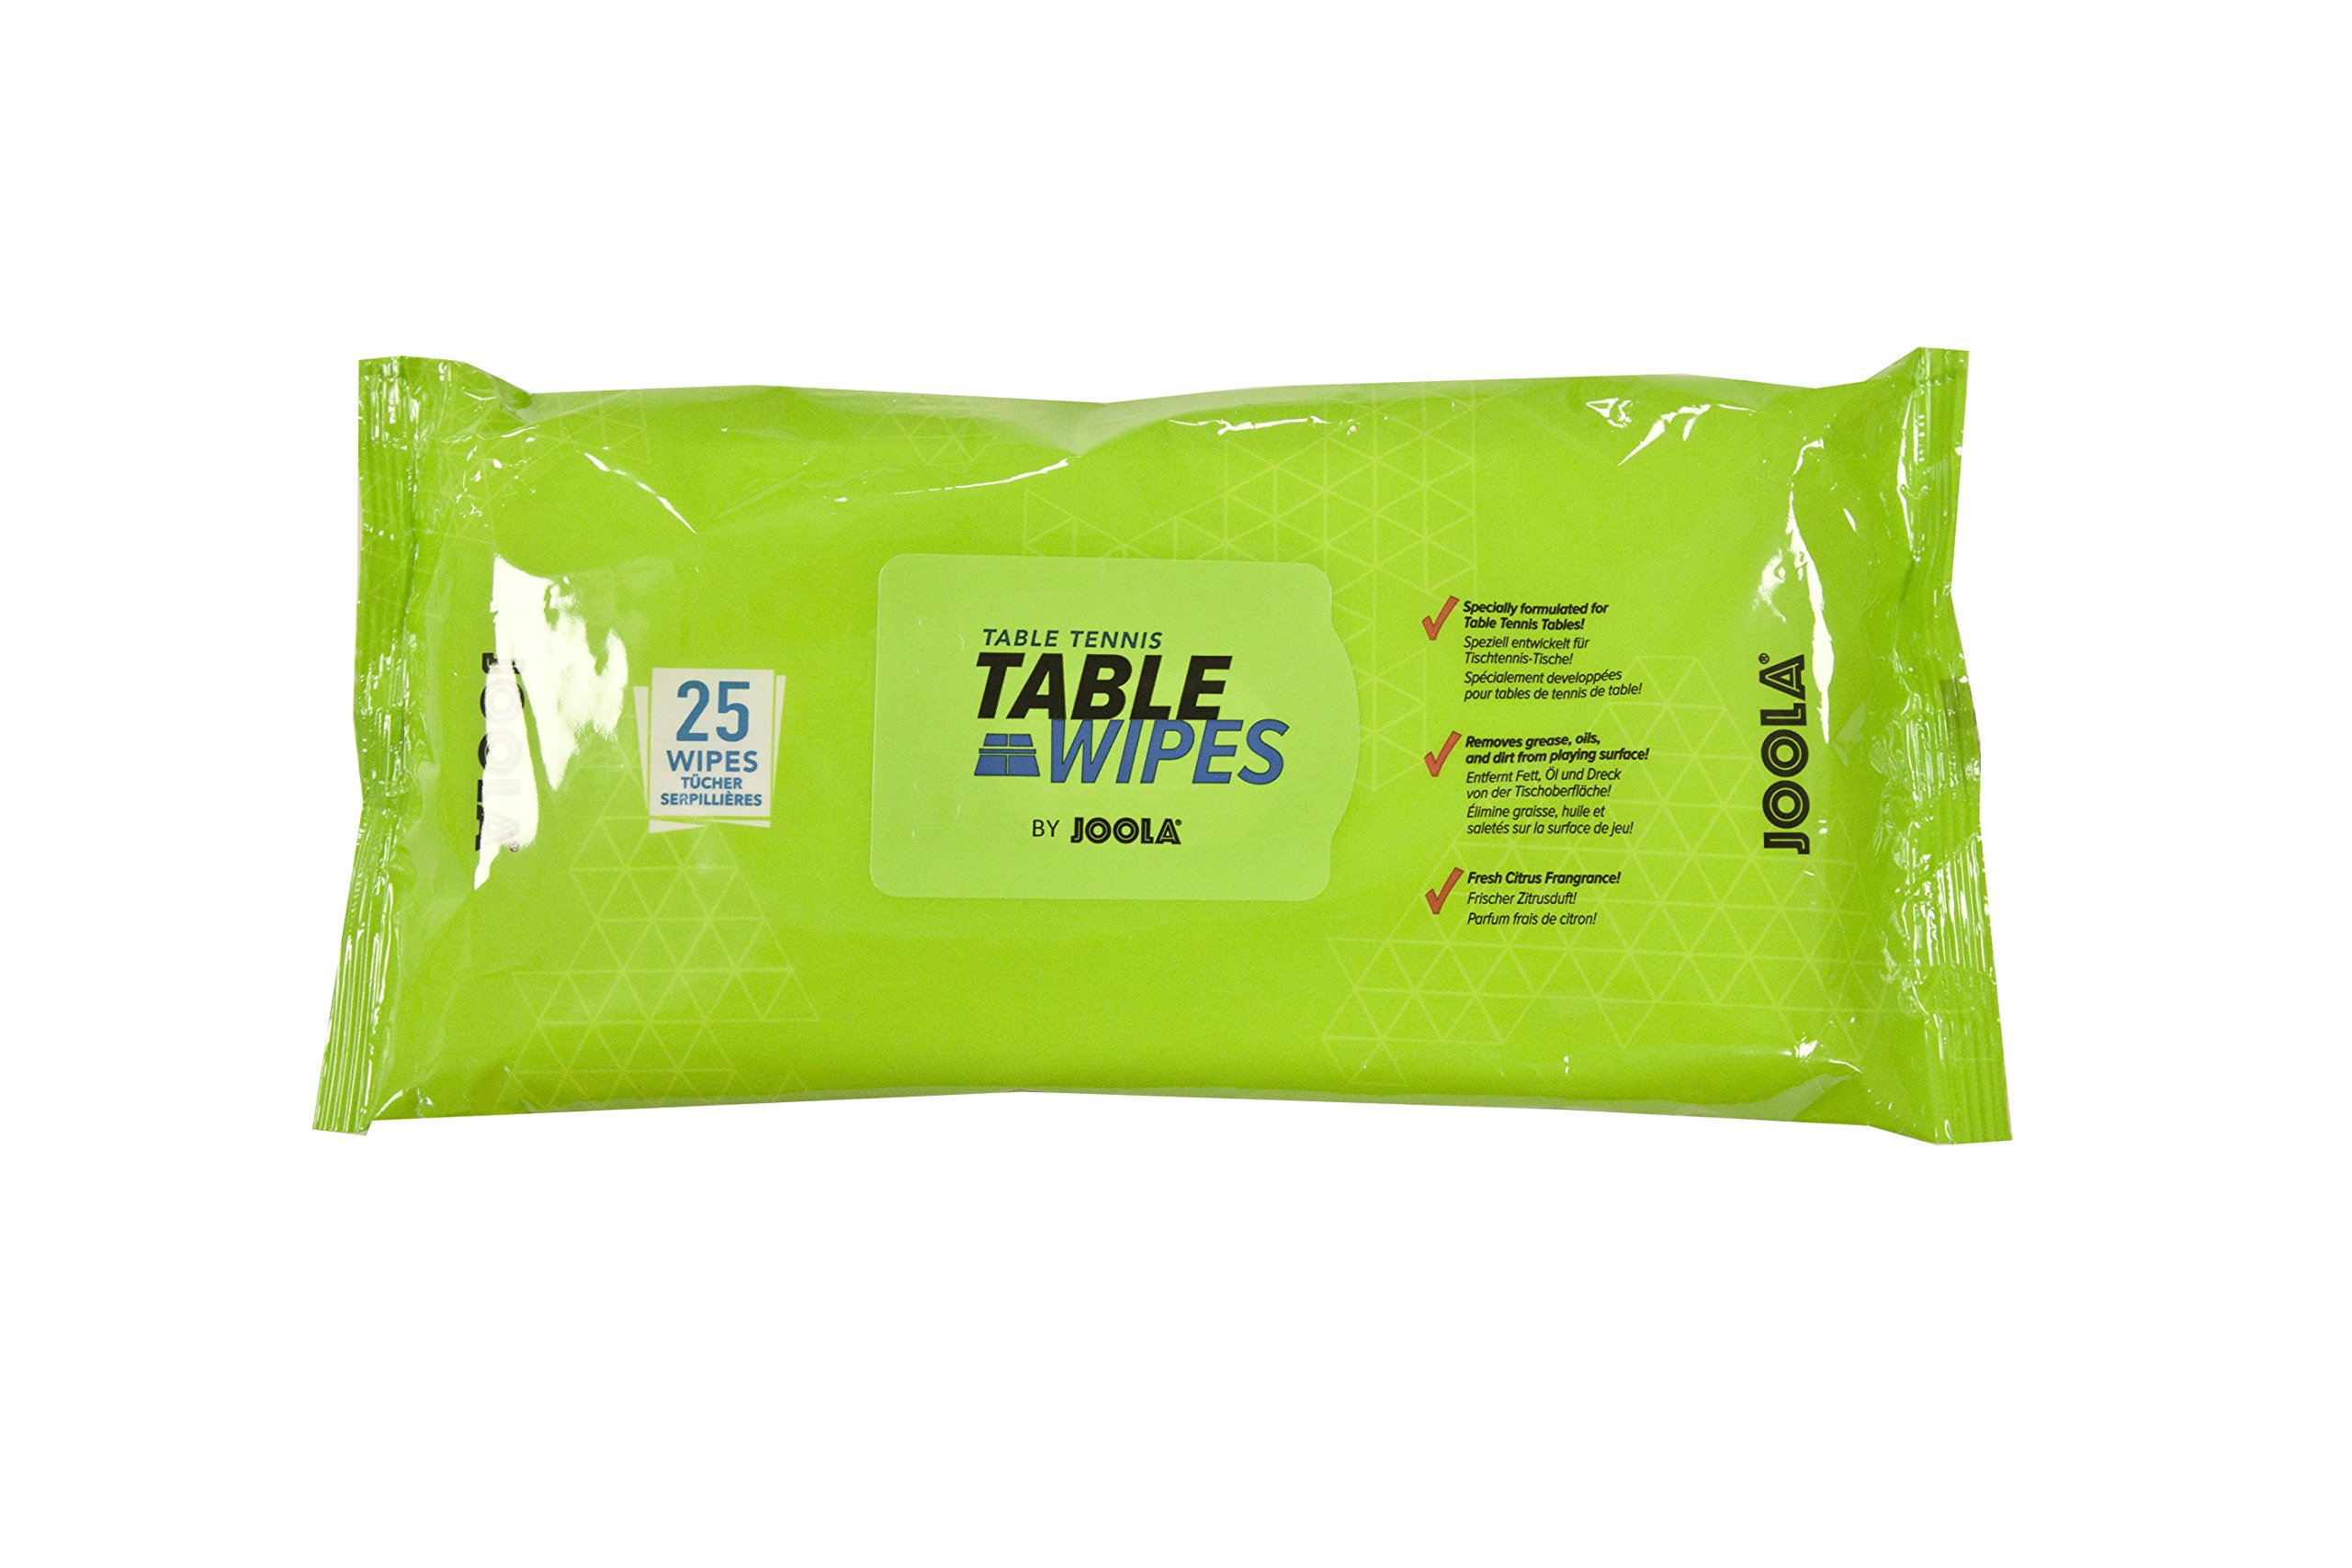 JOOLA Table Tennis Table Surface-Safe Cleaning Wipes (25 Count) - Alcohol & Bleach Free, Citrus Scent